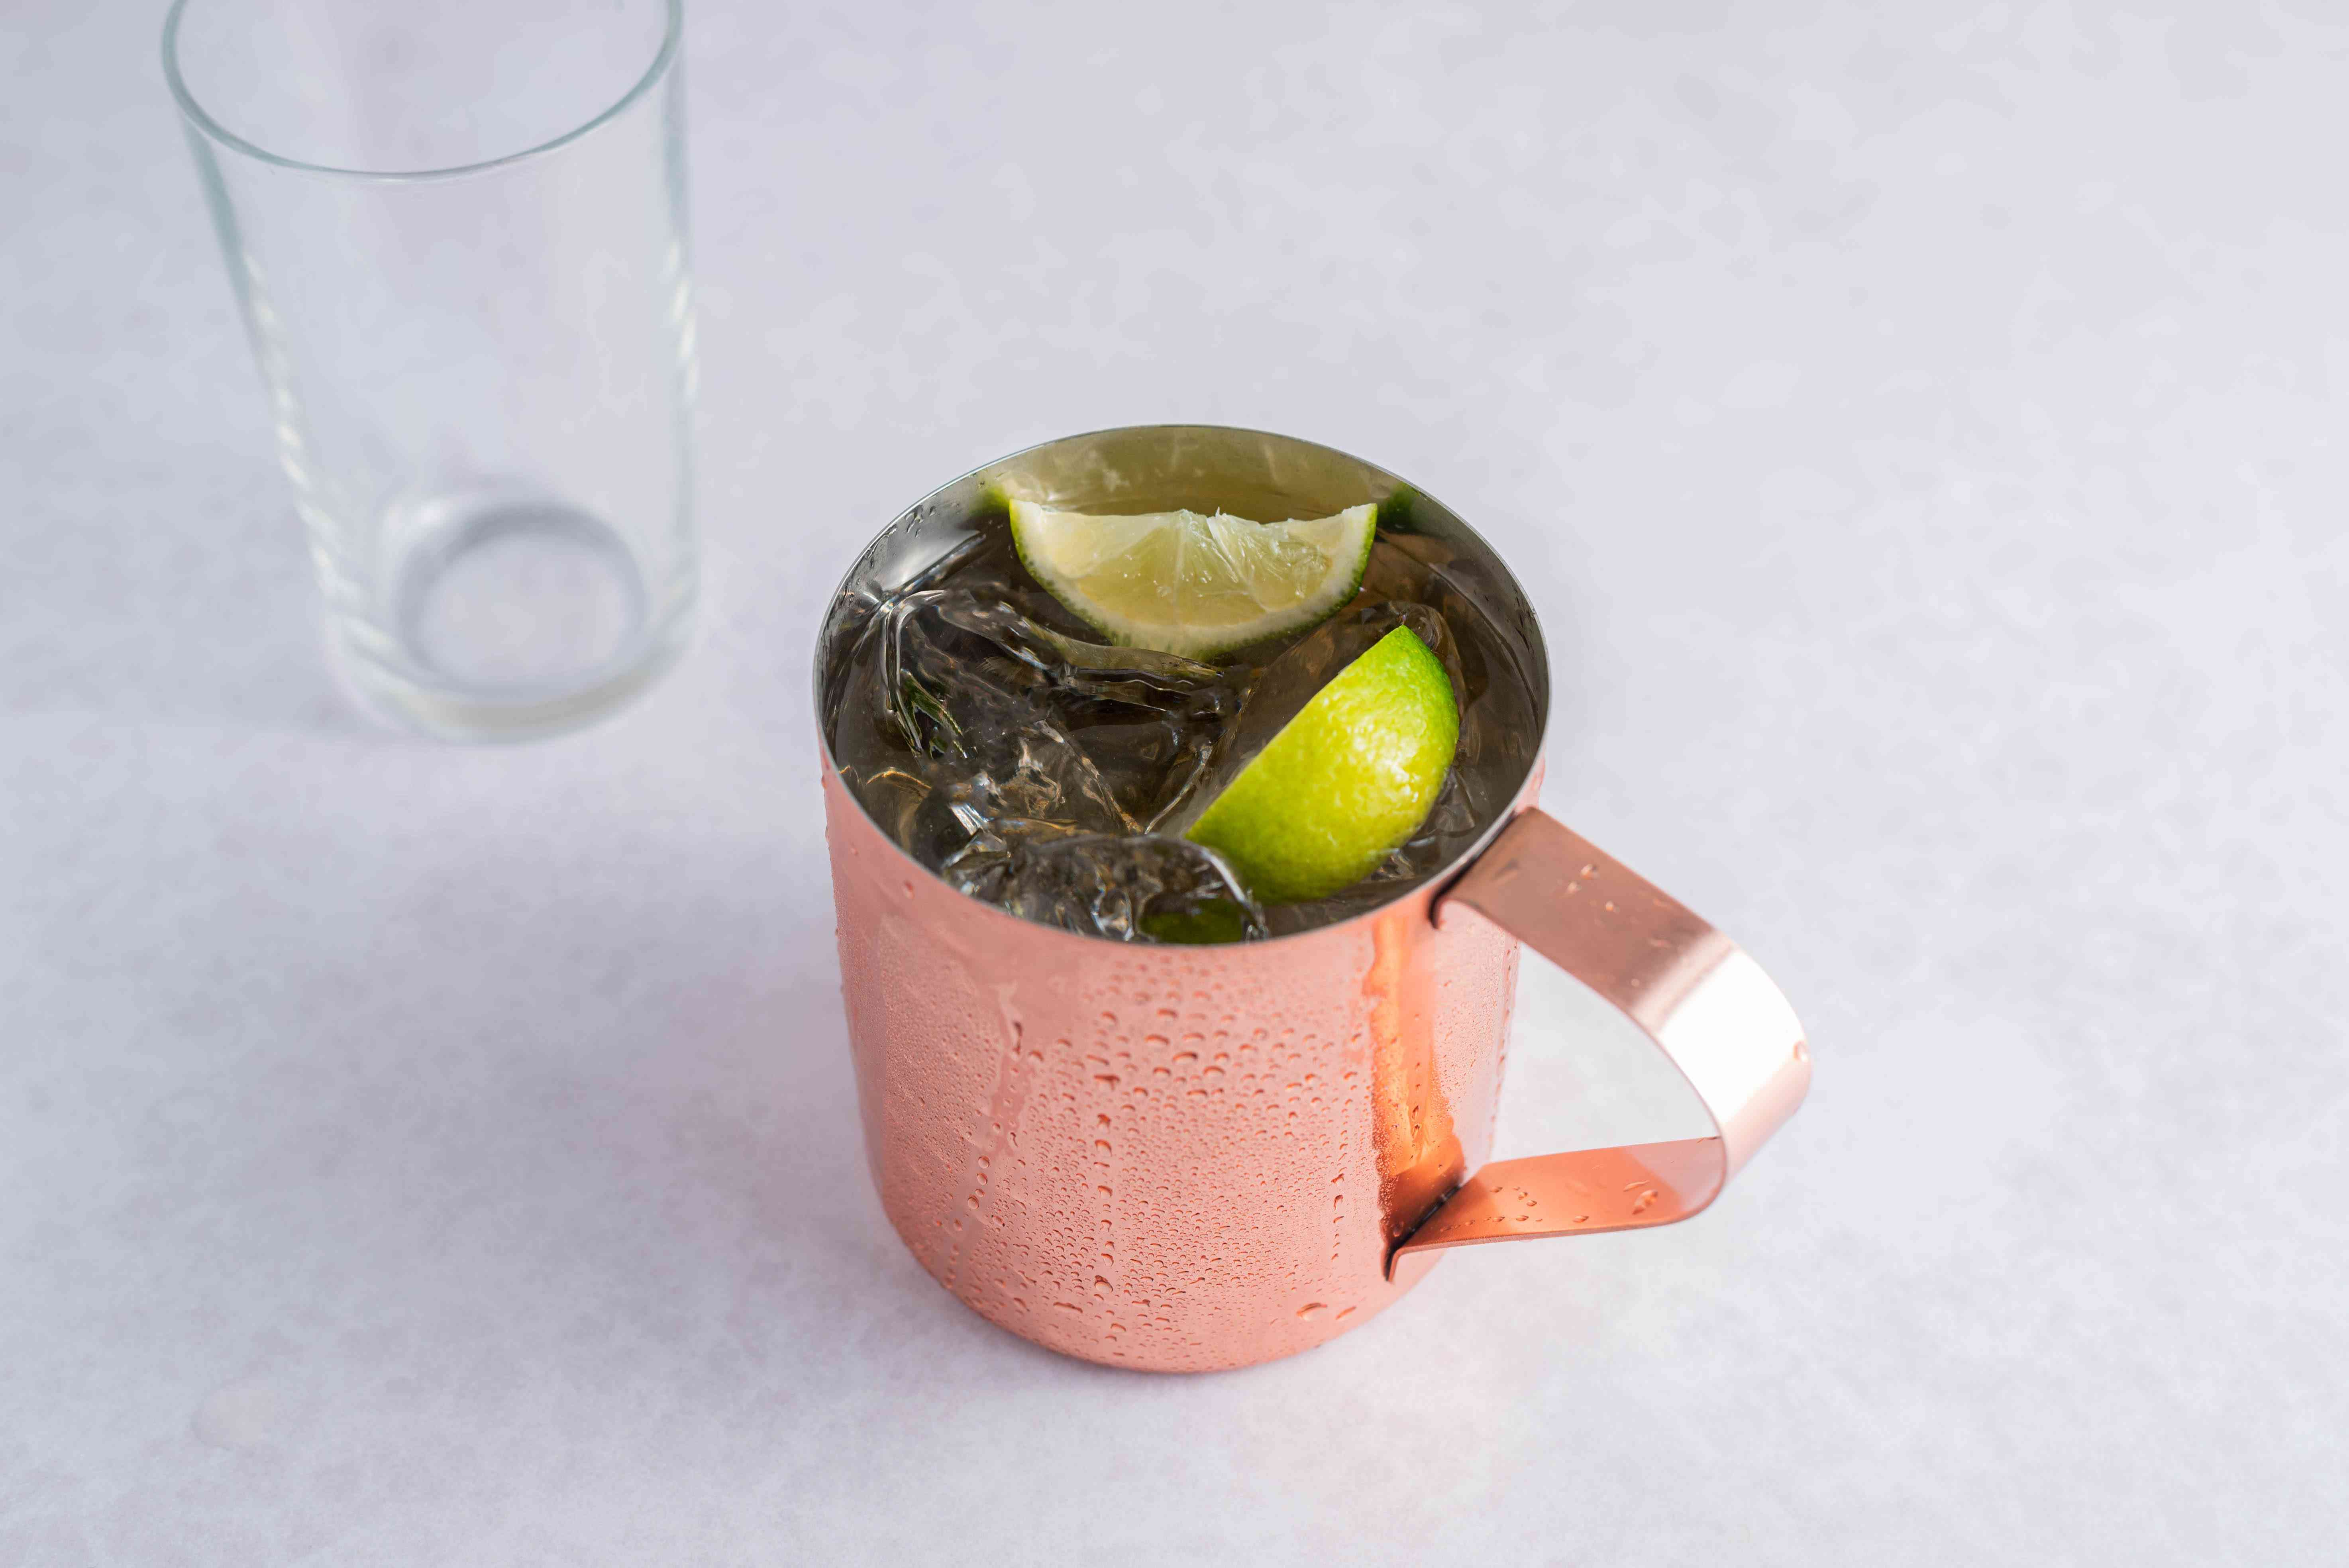 Top with ginger beer and garnish with lime wedges